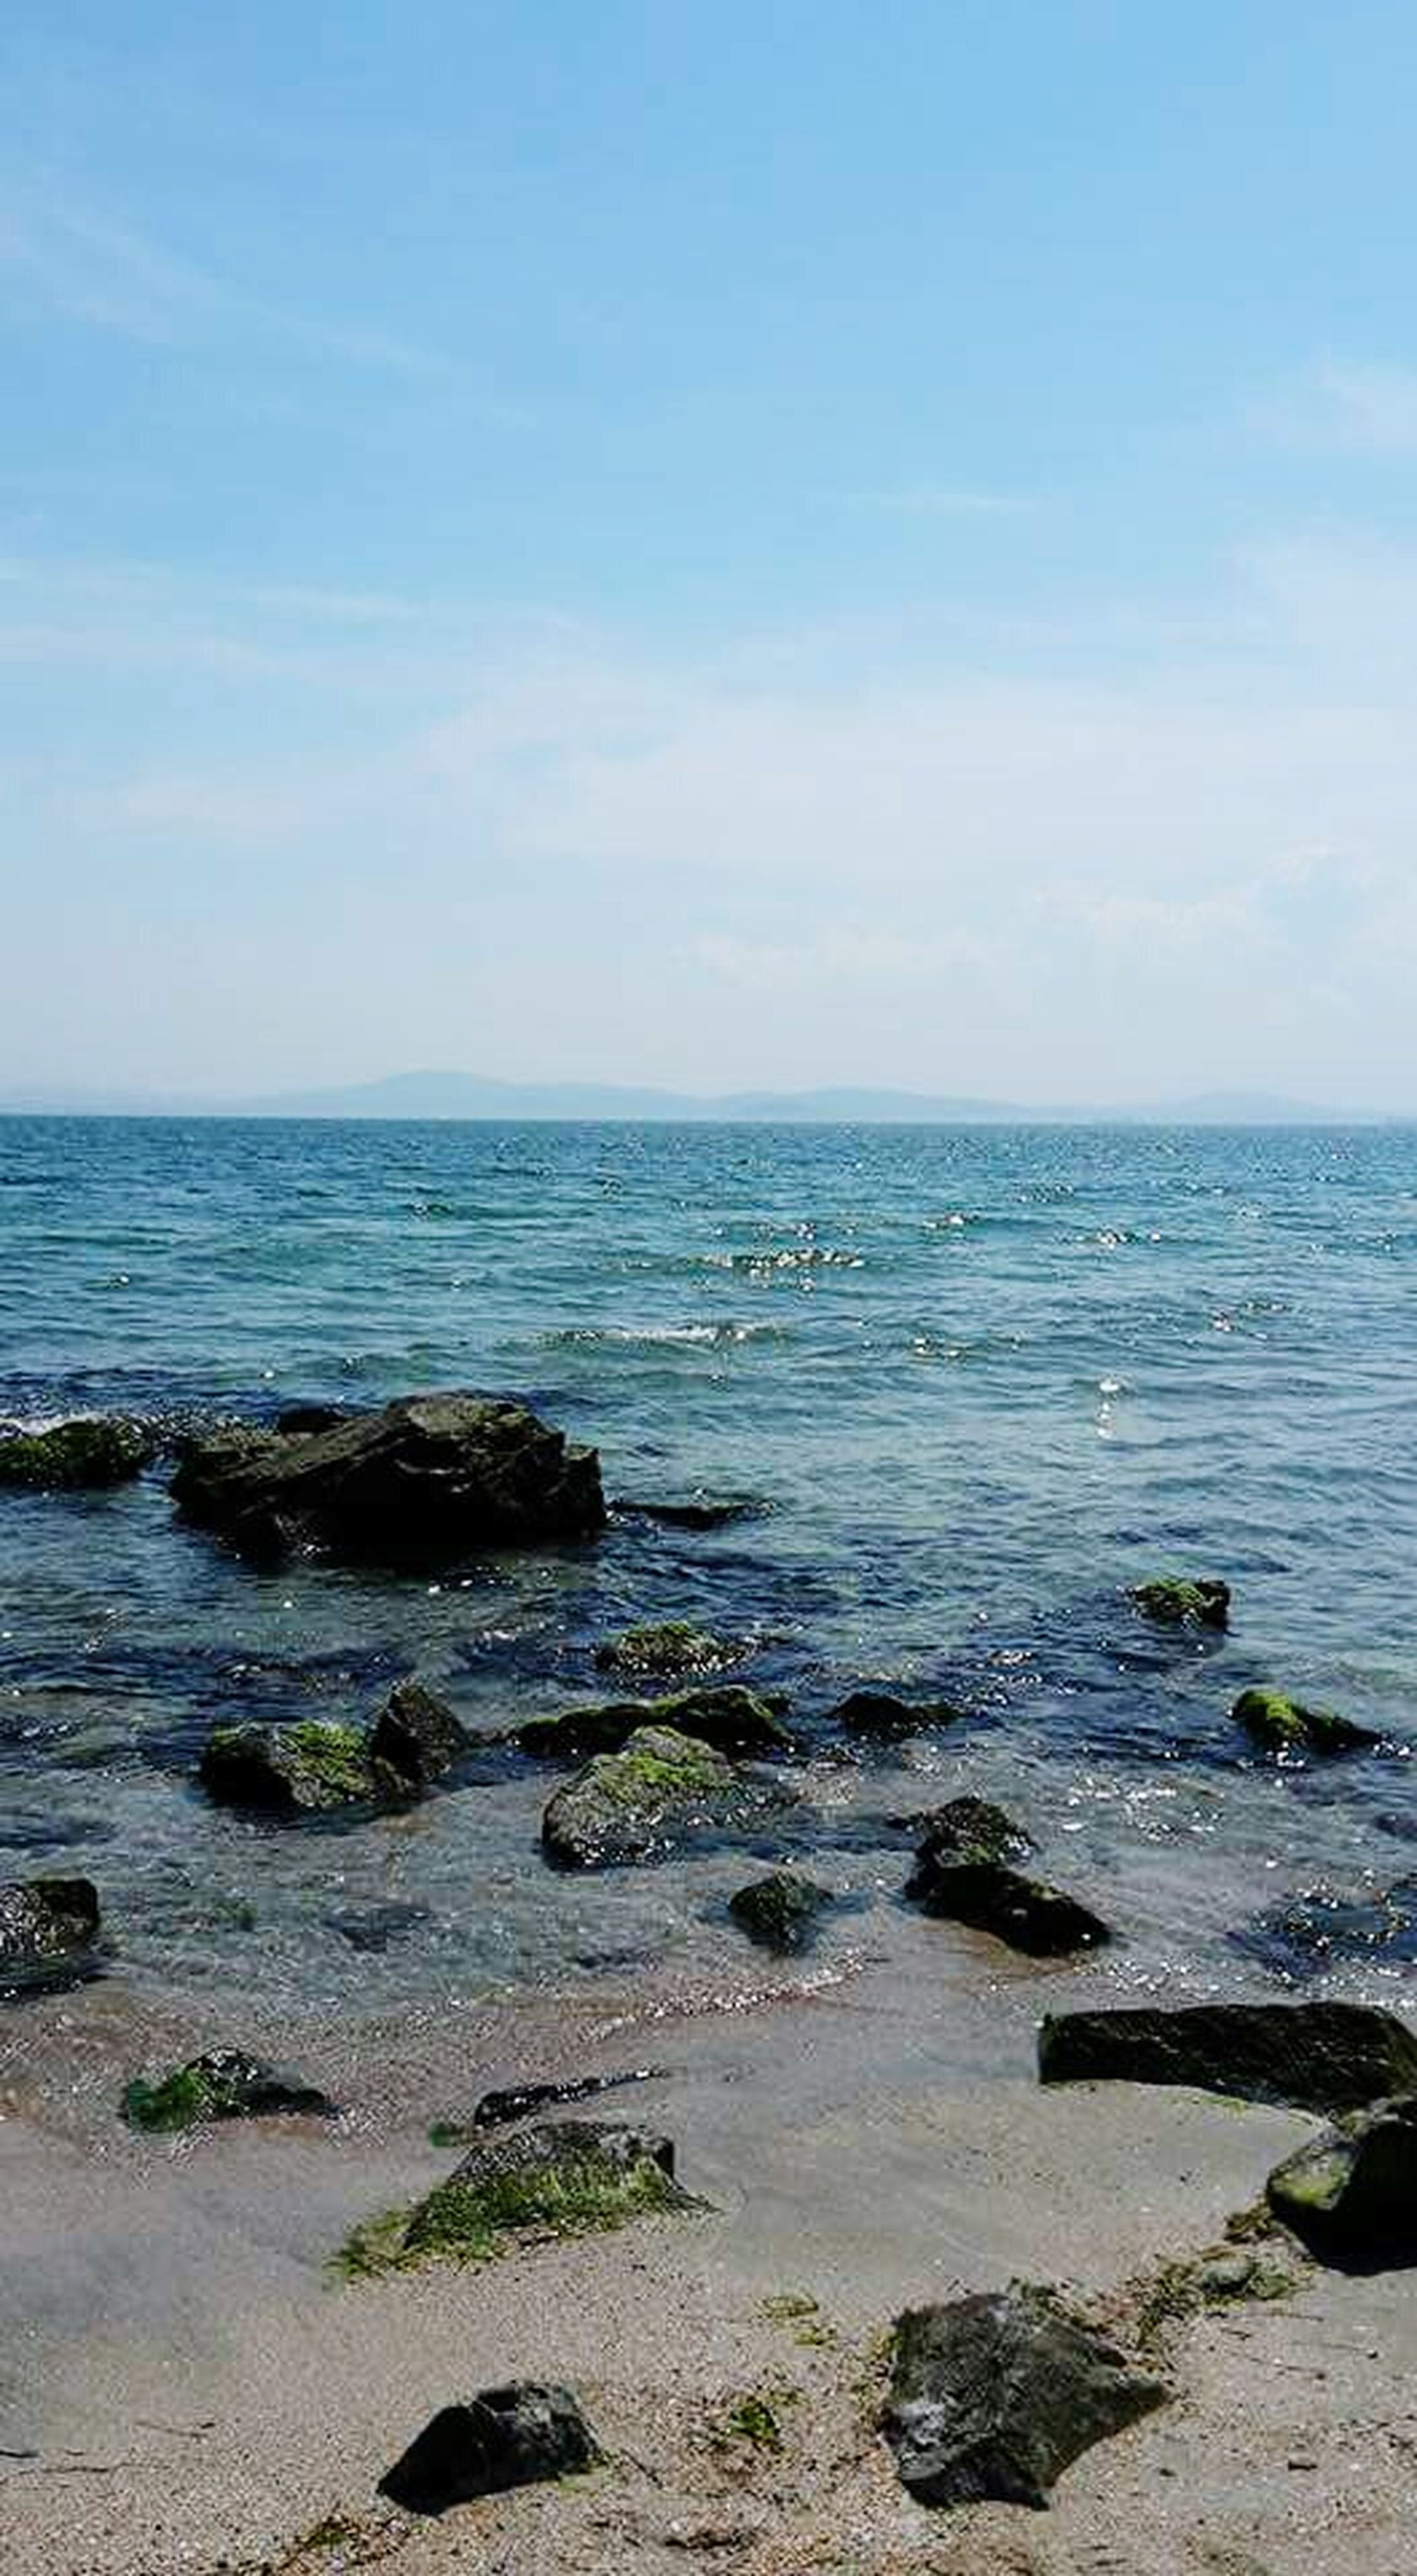 sea, water, horizon over water, tranquil scene, scenics, tranquility, beauty in nature, blue, sky, beach, nature, rock - object, shore, idyllic, rippled, day, wave, outdoors, seascape, no people